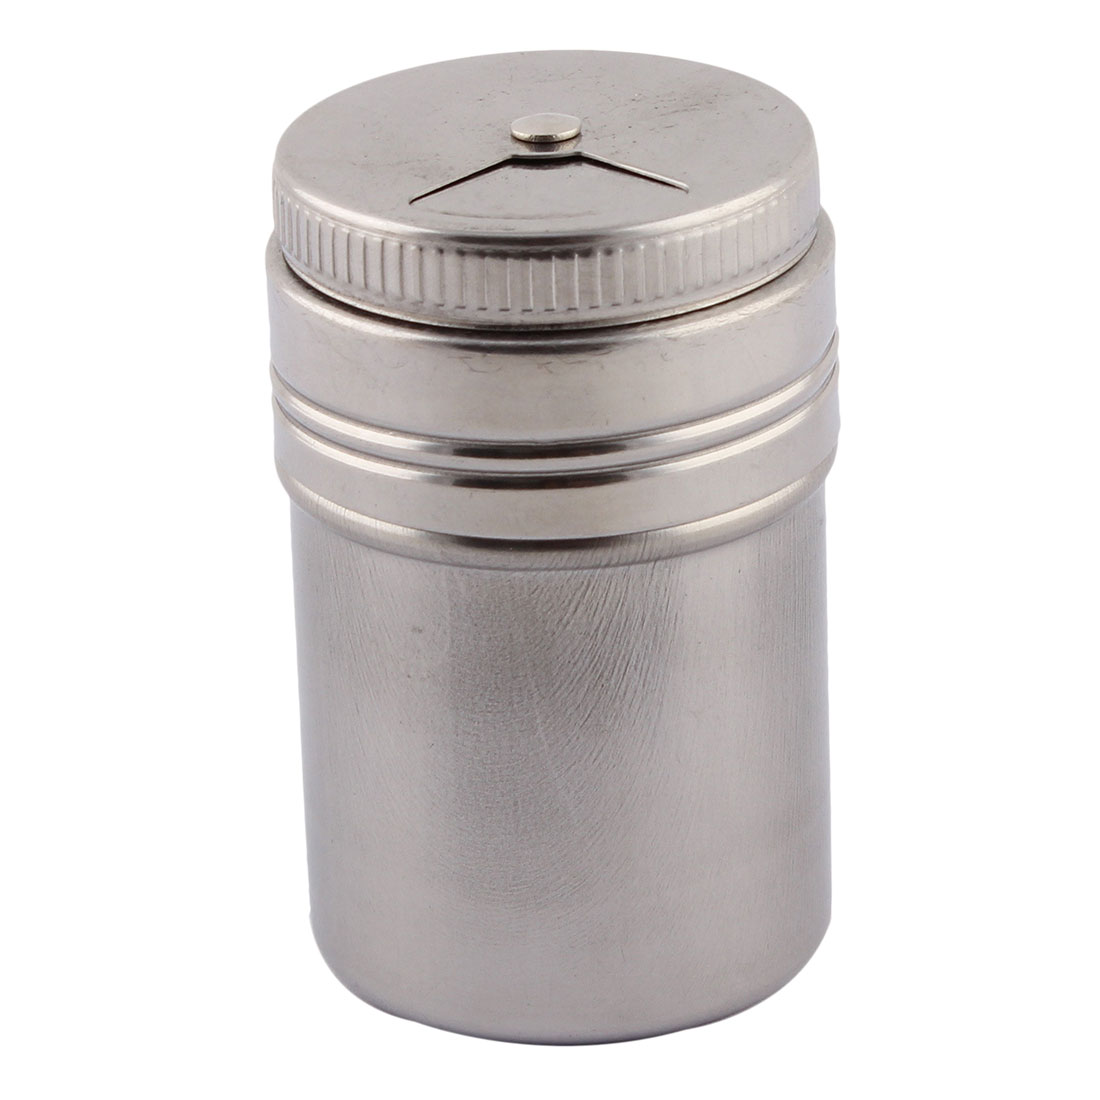 """Kitchenware Metal Adjustable Rotating Spice Pepper Shaker Seasoning Cans 2"""" Dia"""